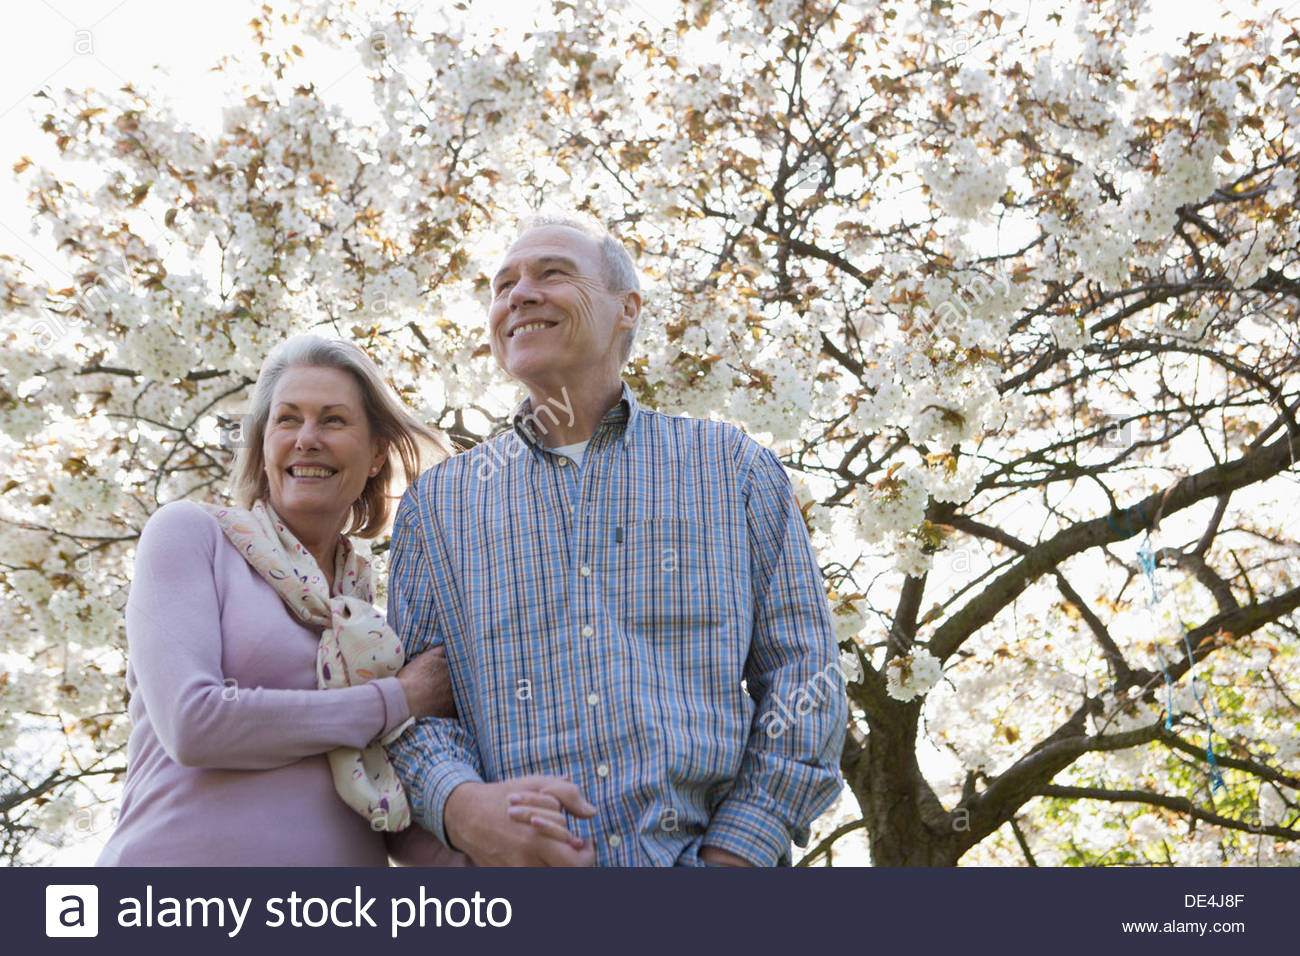 Senior couple hugging under blooming tree - Stock Image